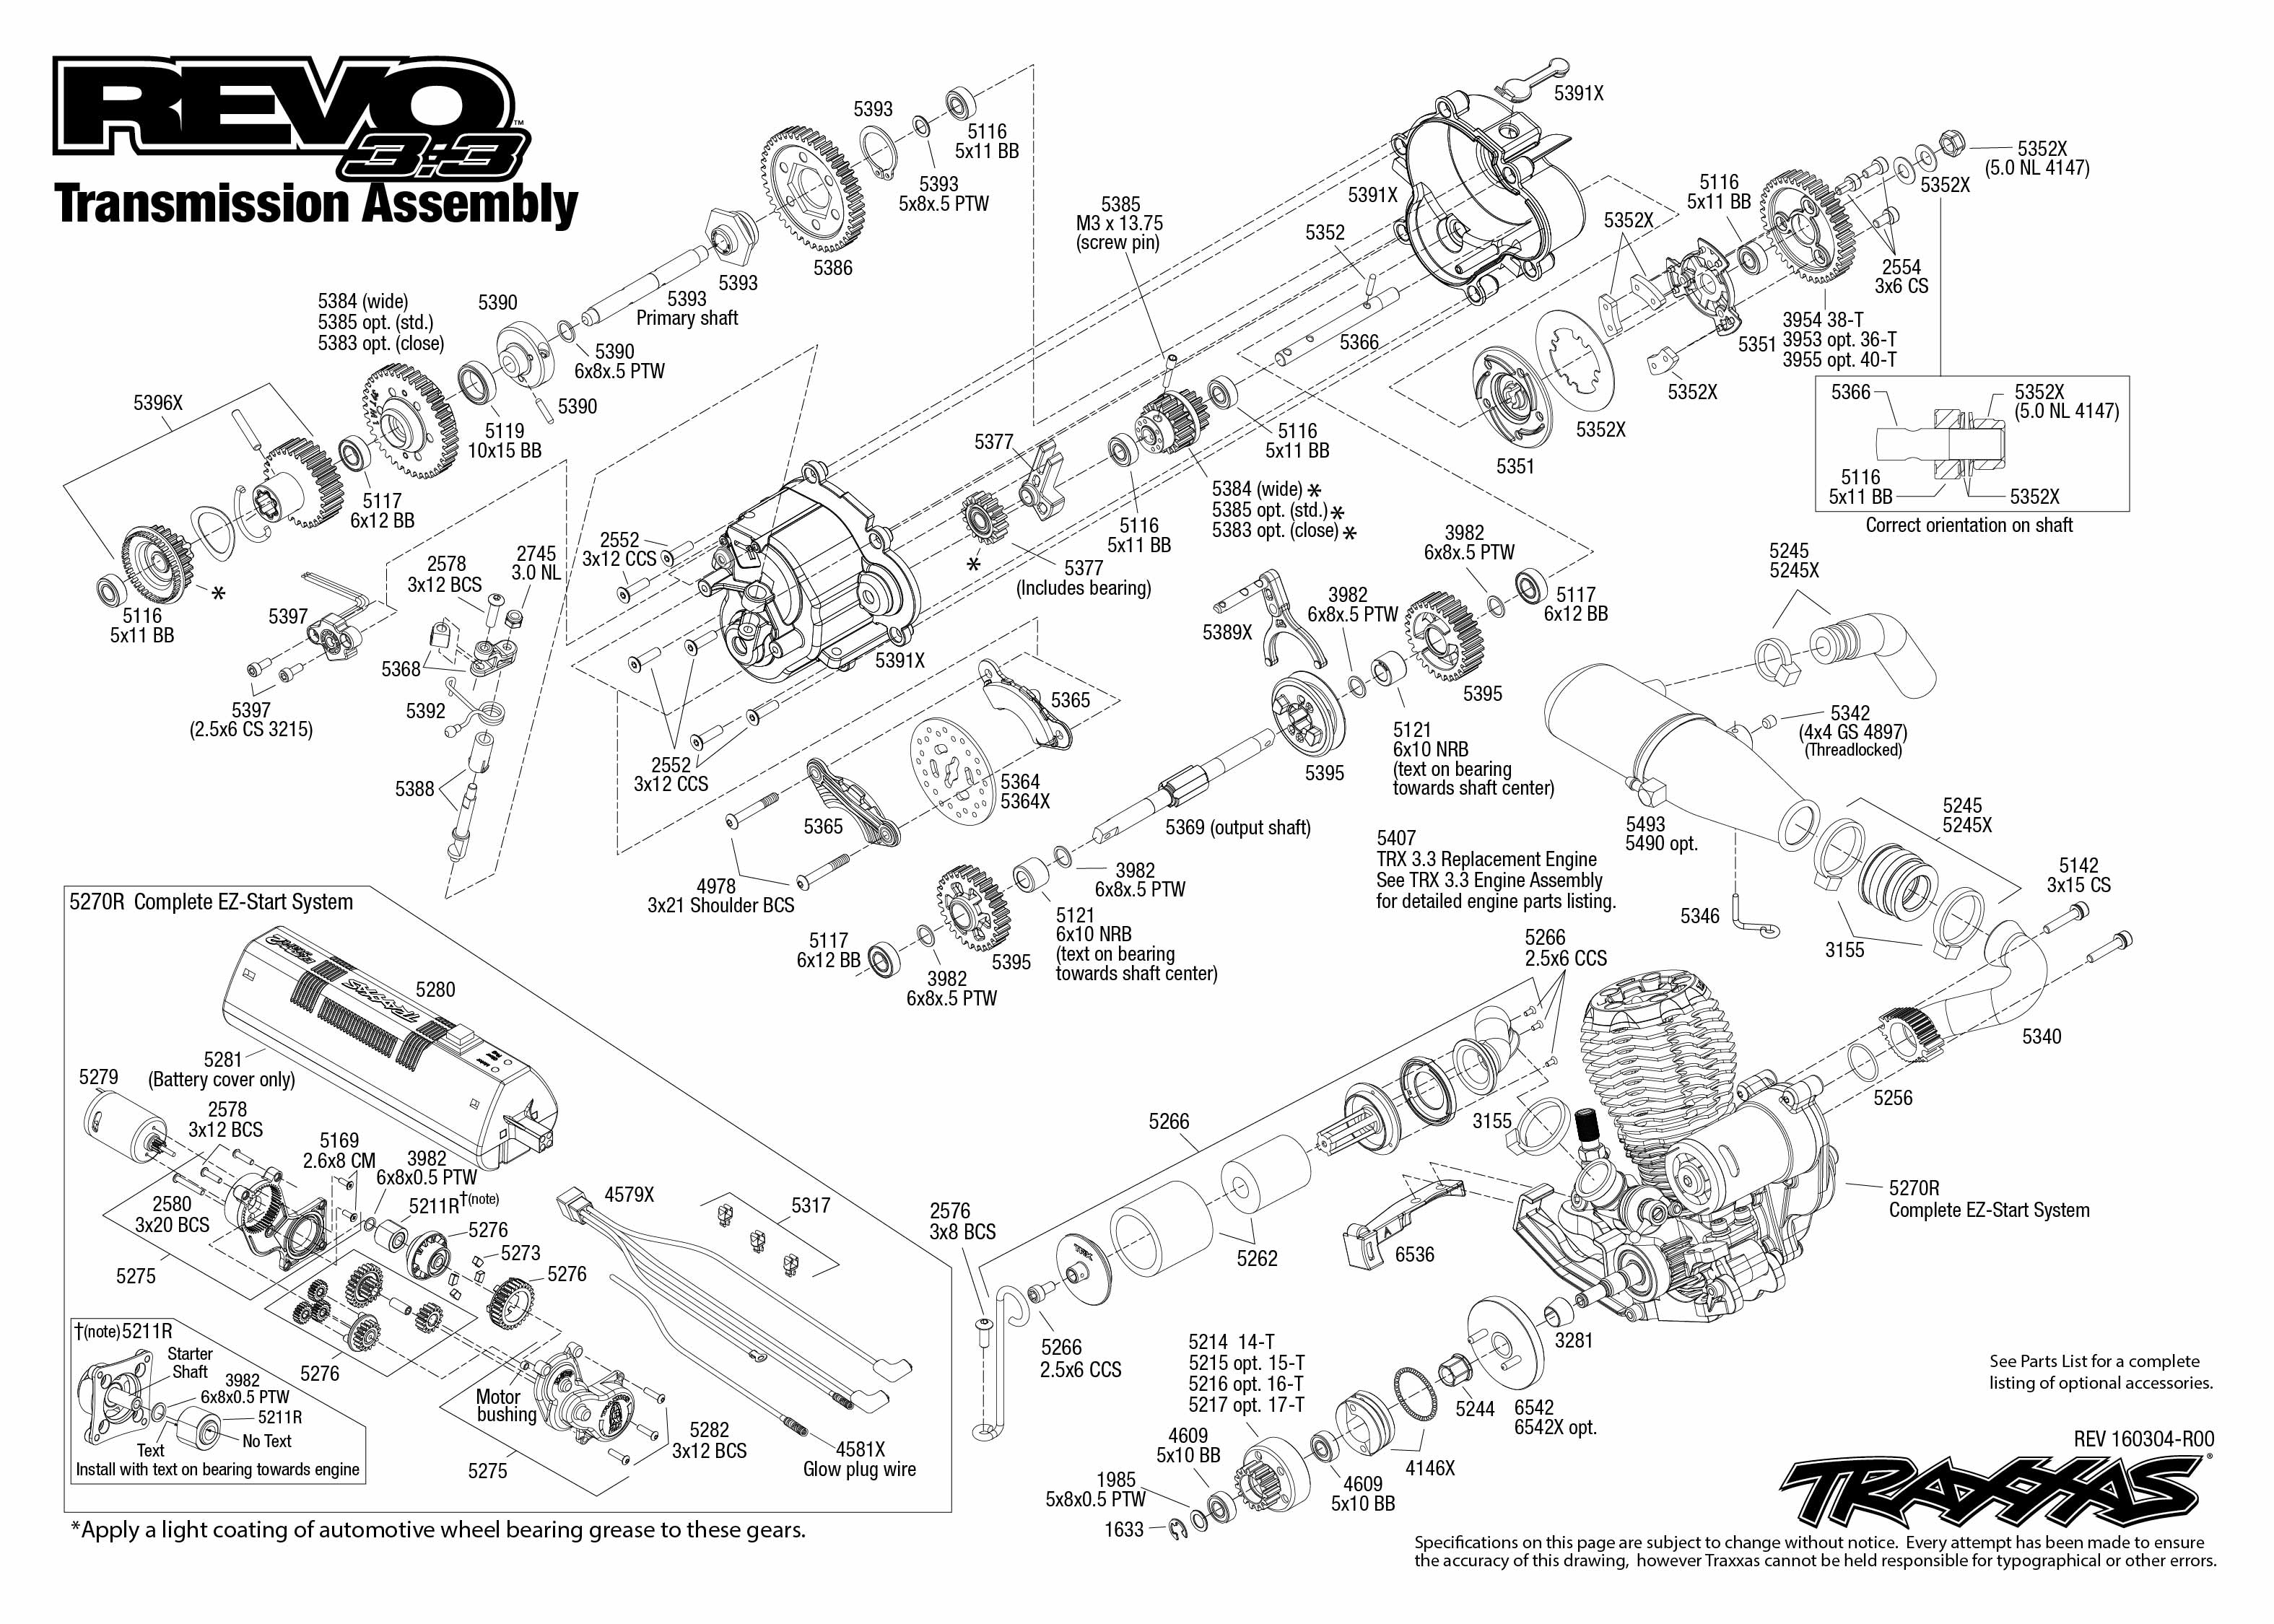 53097 3_Revo33 TQi exploded views 160304_53097 3 Transmission Assembly revo 3 3 (53097 3) transmission assembly exploded view traxxas traxxas summit wiring diagram at soozxer.org